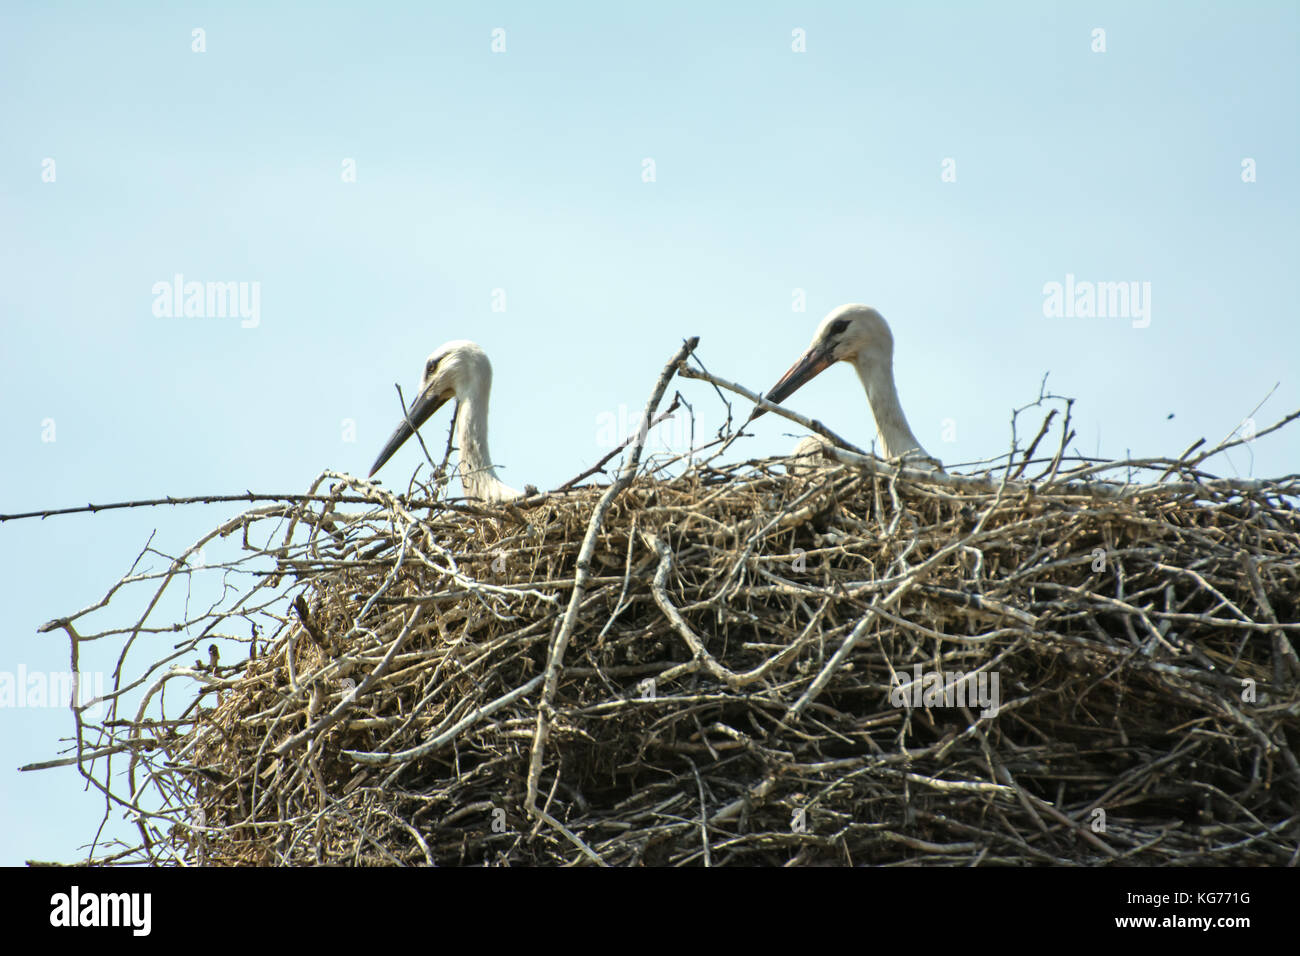 Two young storks sitting in their nest - closeup only with heads and neck visible - Stock Image